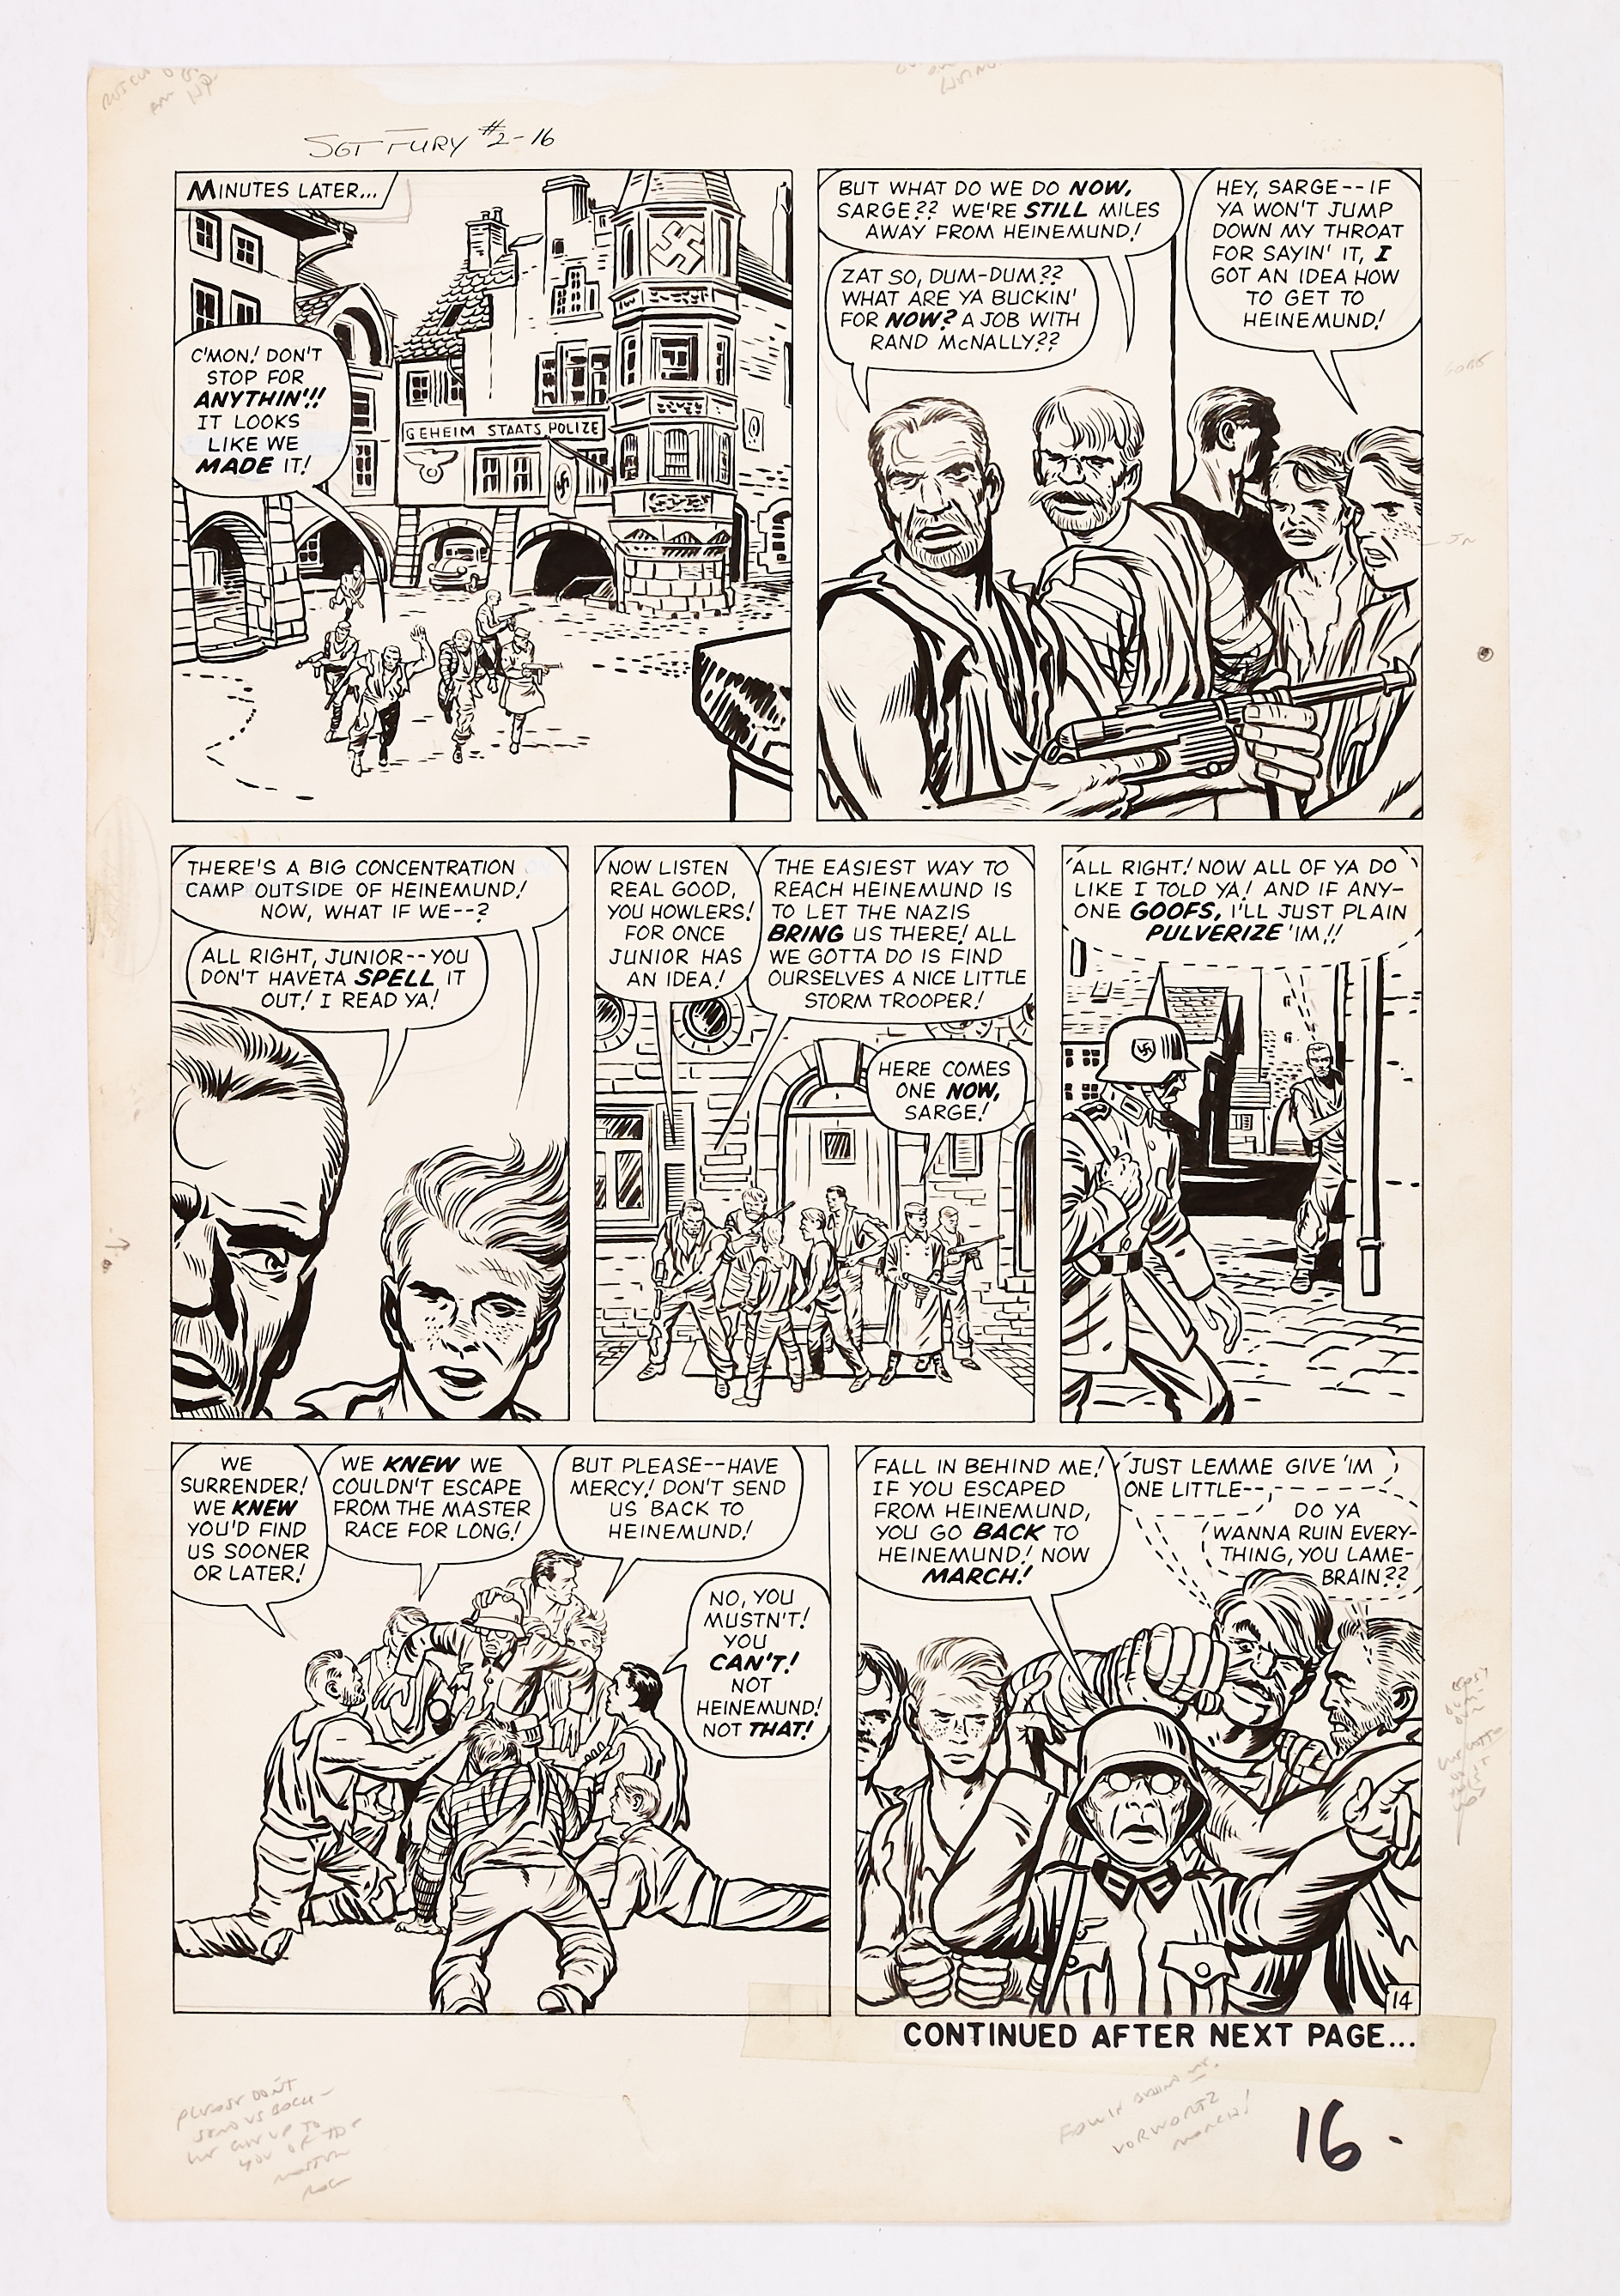 Lot 249 - Sgt Fury #2 pg 16 (1963) original artwork by Jack Kirby. Indian ink on cartridge paper. 21 x 14 ins